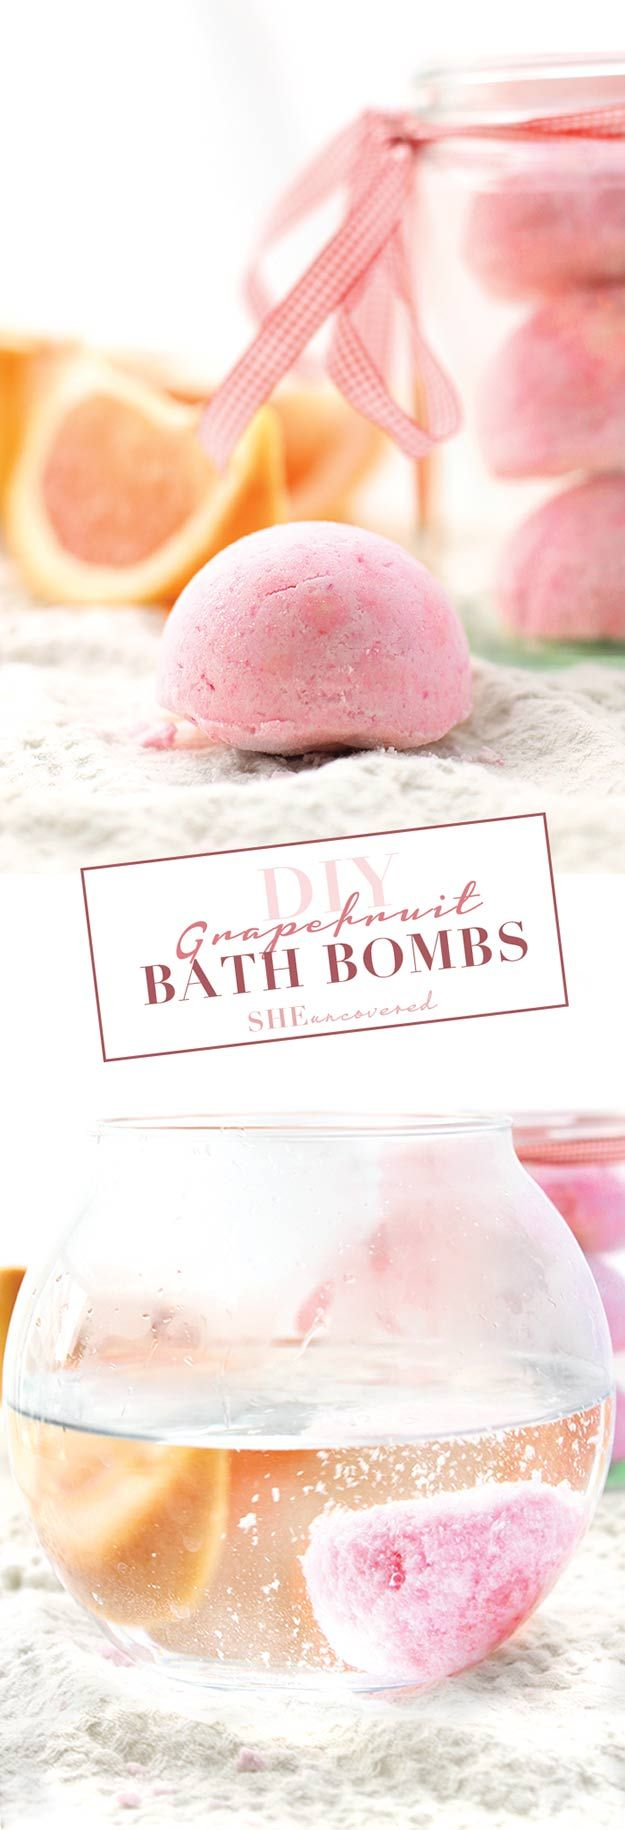 Best DIY Ideas from Pinterest | Homemade Bath Bomb Recipes and Tutorials | Make Grapefruit Bath Bombs at Home Like Lush